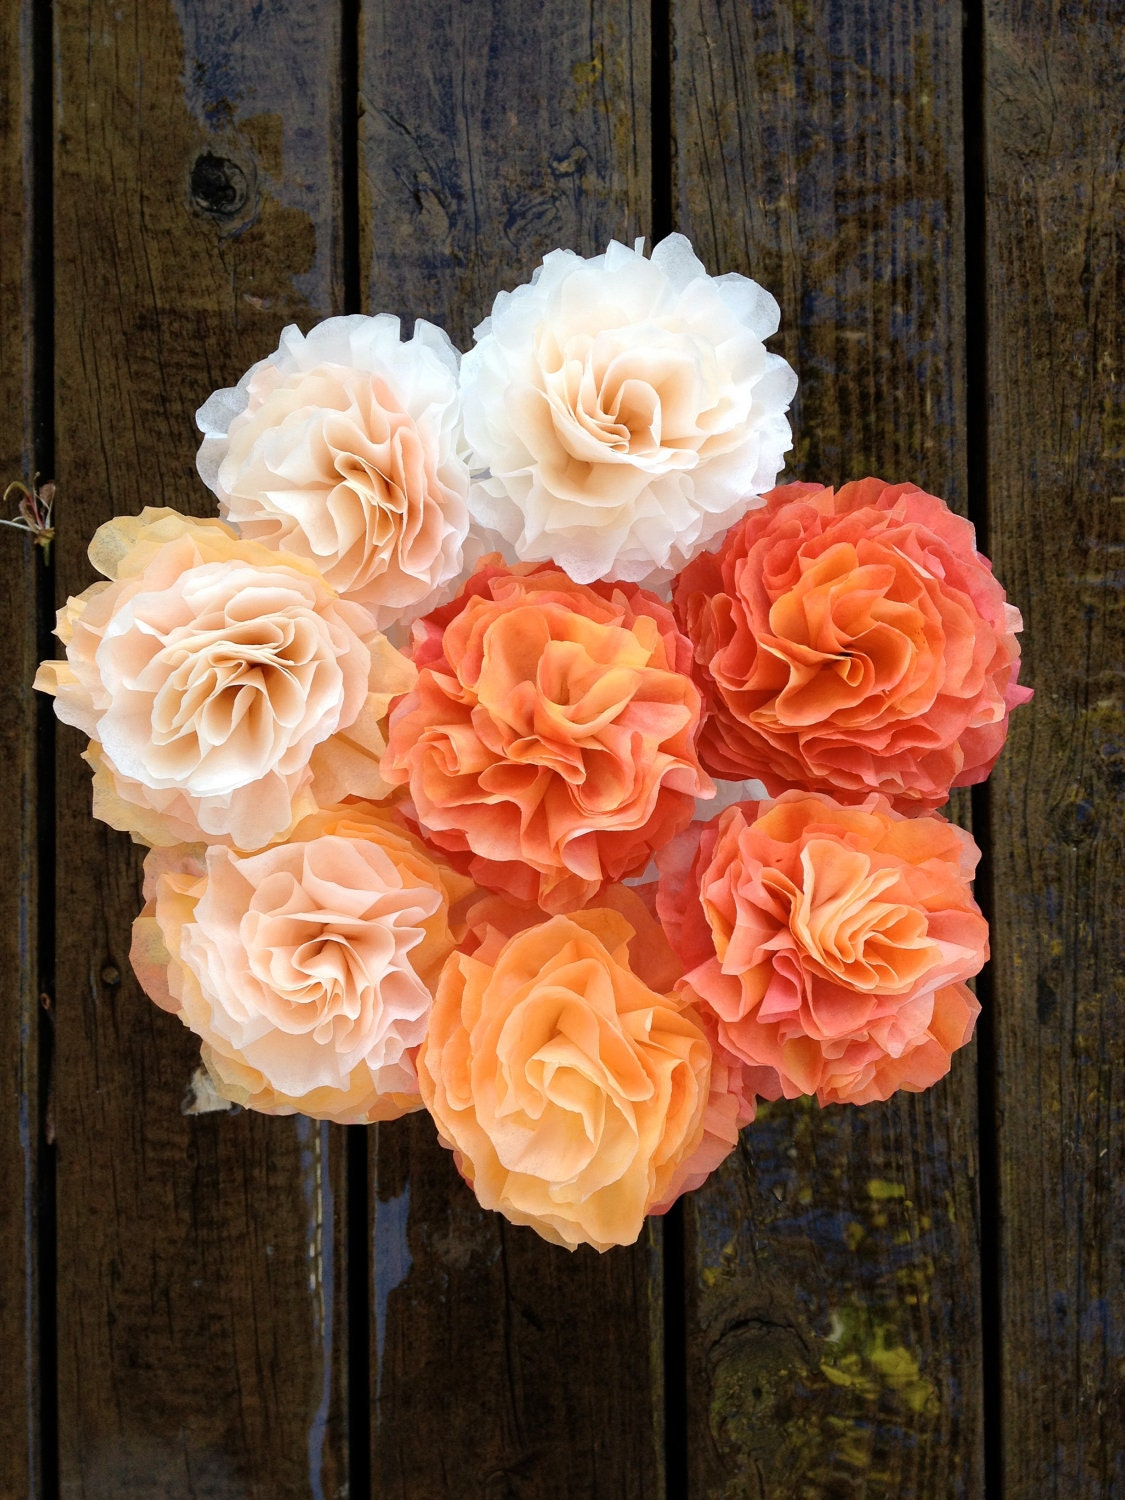 Hand crafted paper flower bouquet peach to orange by LivePlayLove